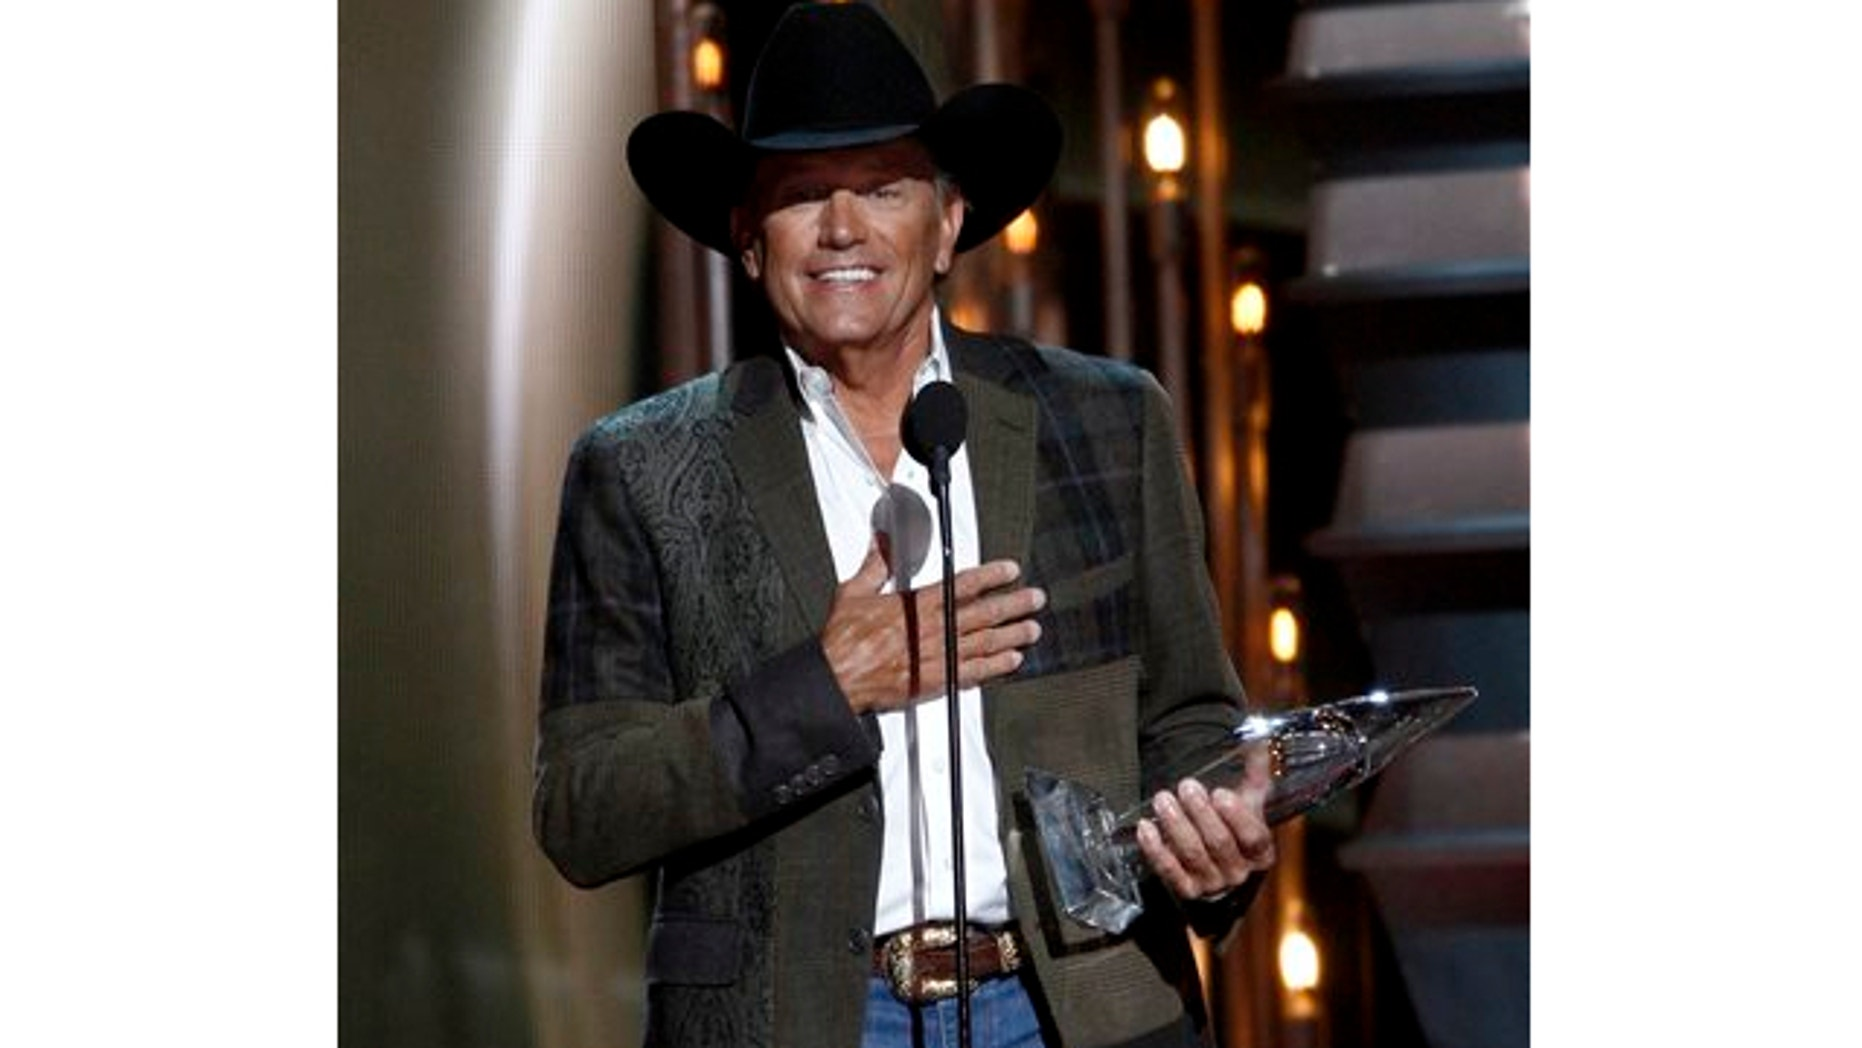 Nov. 6, 2013: George Strait accepts the award for entertainer of the year at the 47th annual CMA Awards at Bridgestone Arena in Nashville, Tenn.